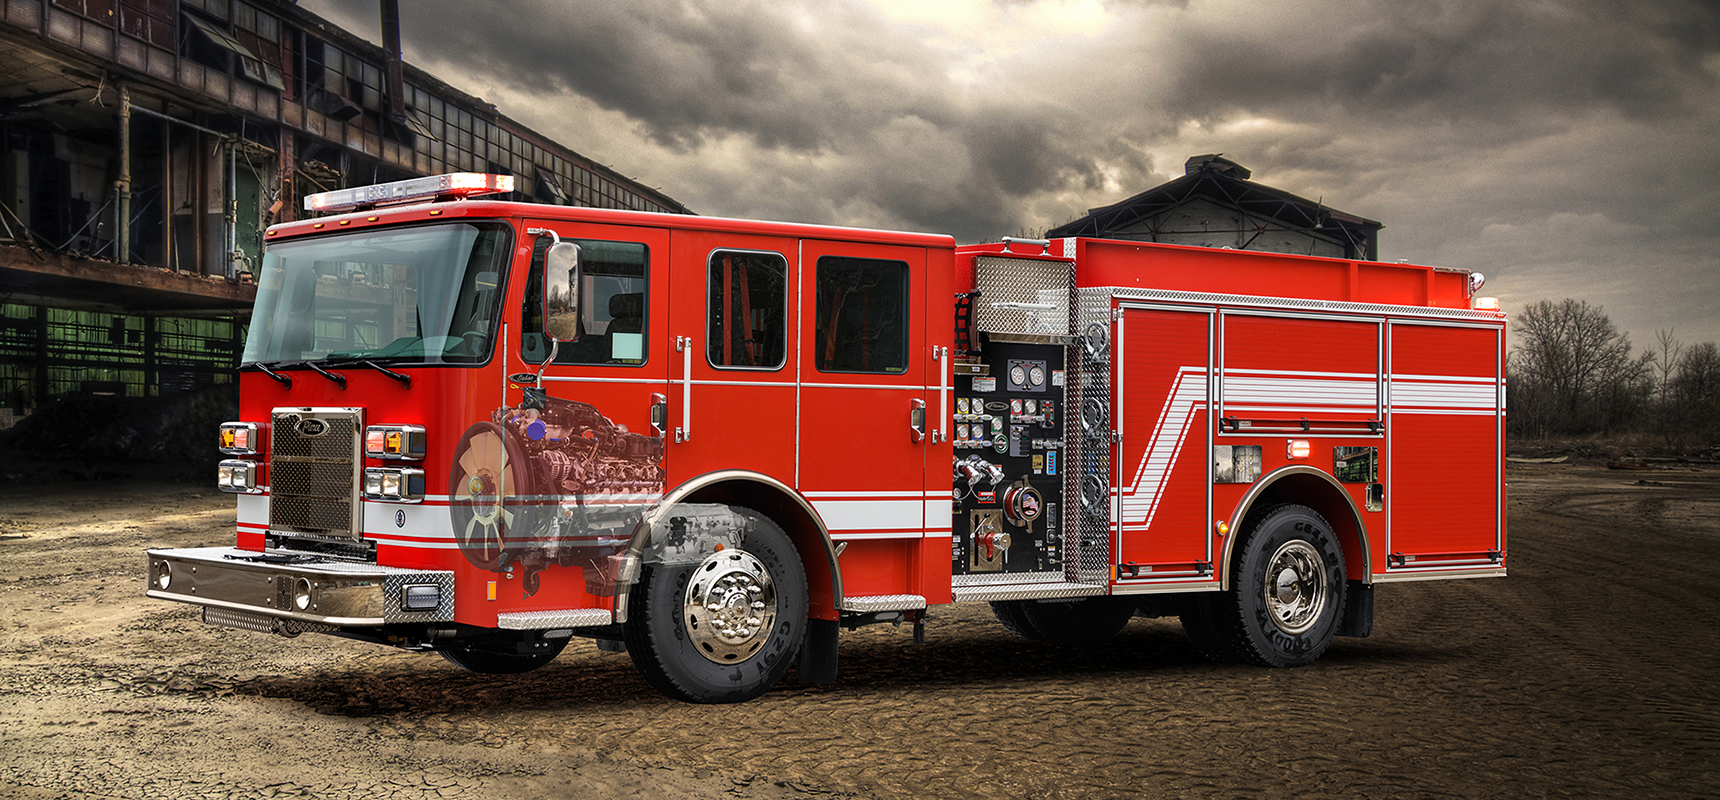 Pierce-Saber-Custom-Chassis-Now-Available-With-A-Ford-6.7L-Power-Stroke-V-8-Turbo-Diesel-Power-Train-PR-Header.png